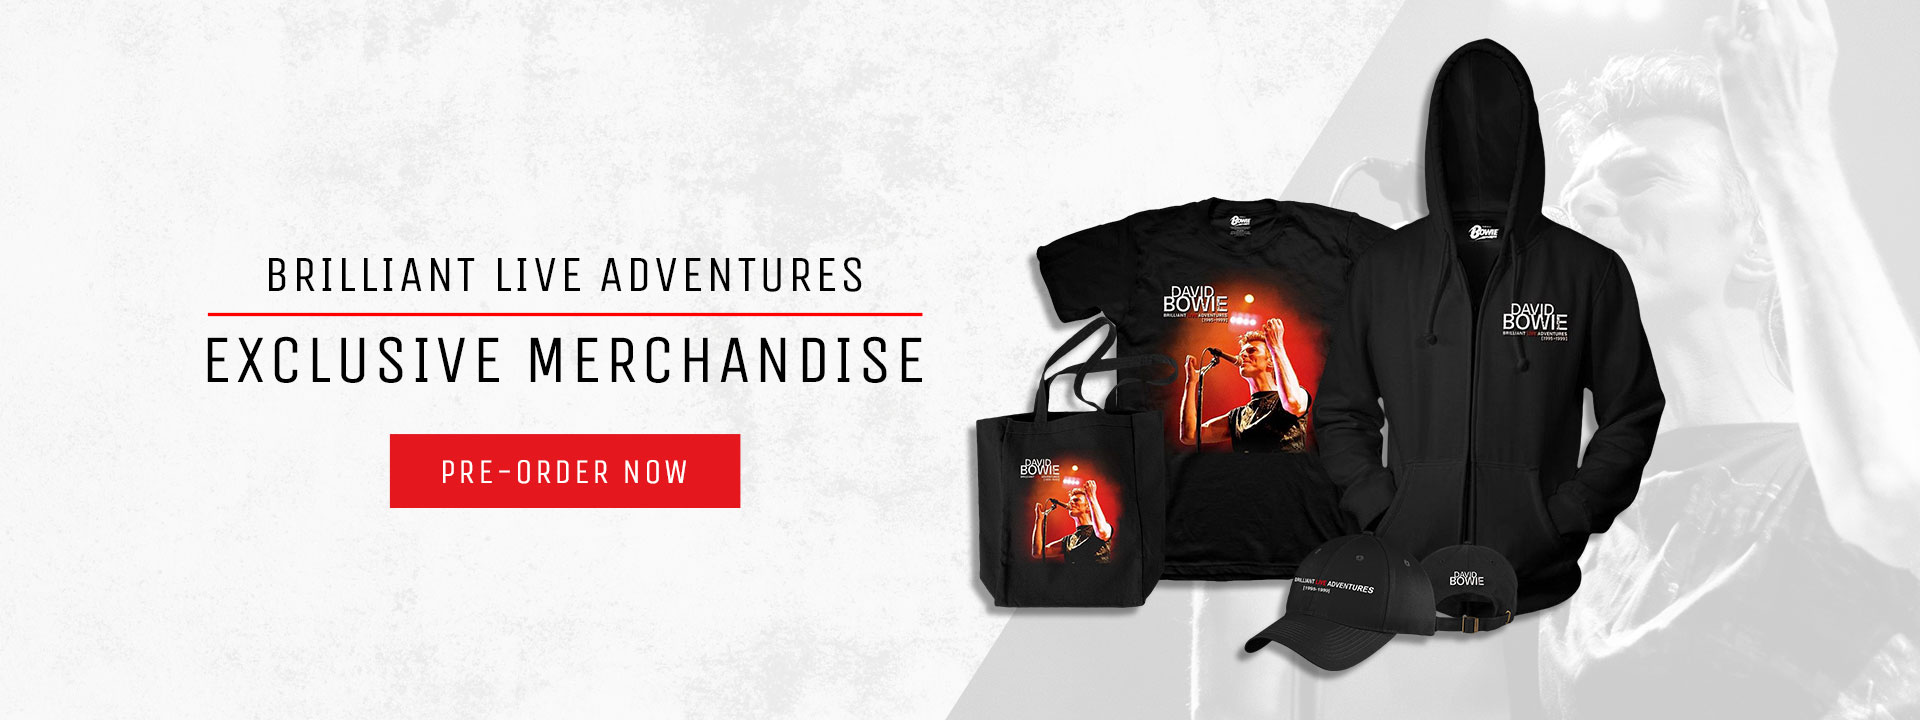 Brilliant Live Adventures Merchandise